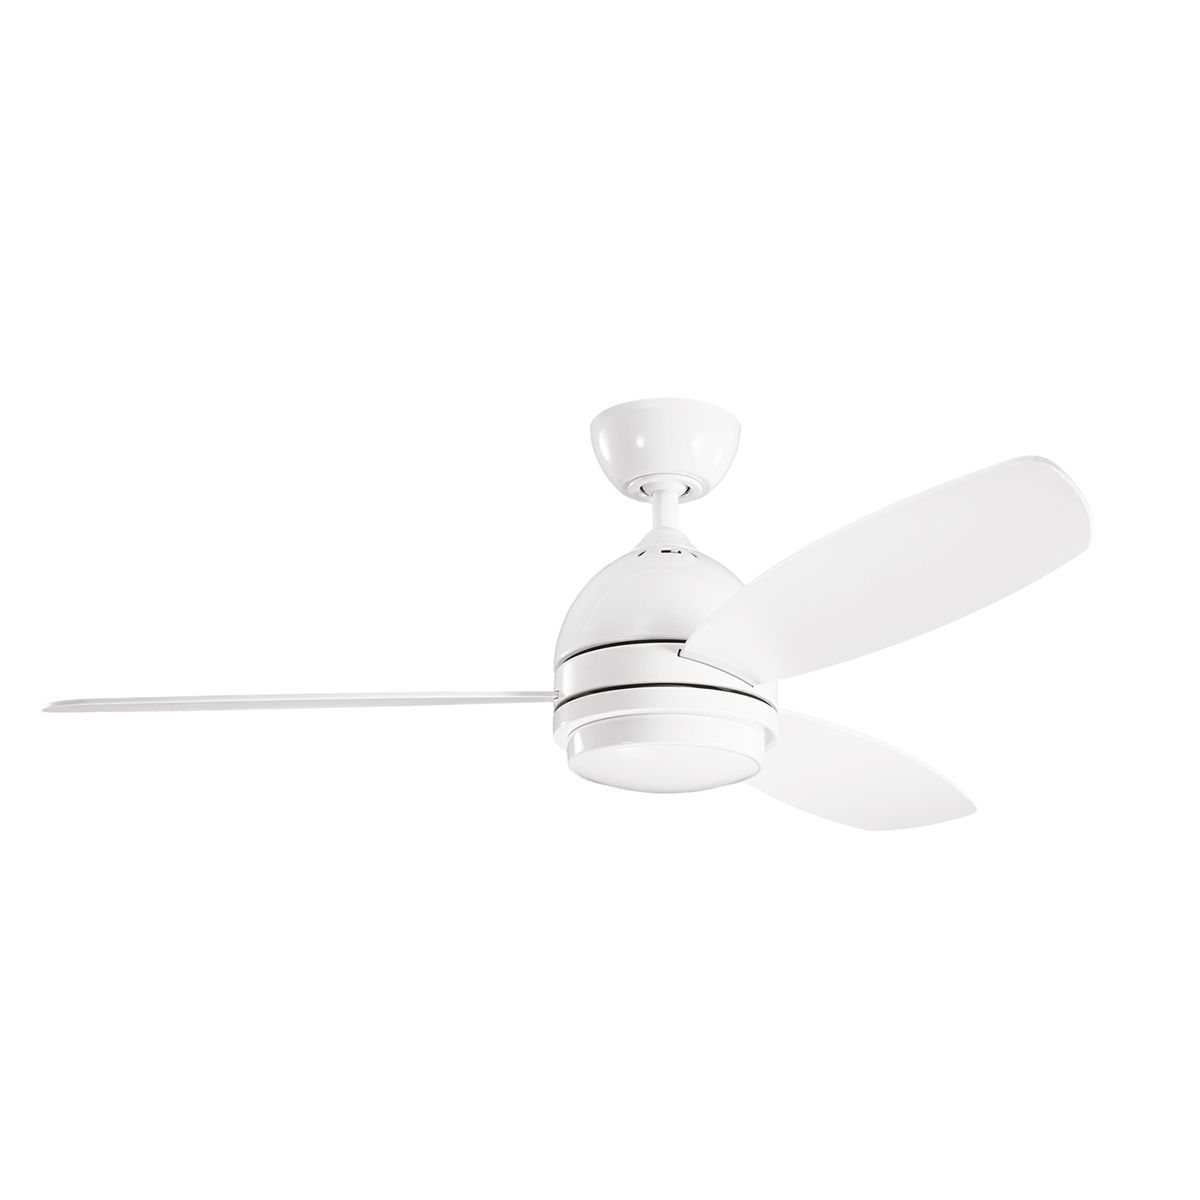 Vassar Ceiling Fan With Light By Kichler 330002wh Ceiling Fan With Light Led Ceiling Fan Ceiling Fan